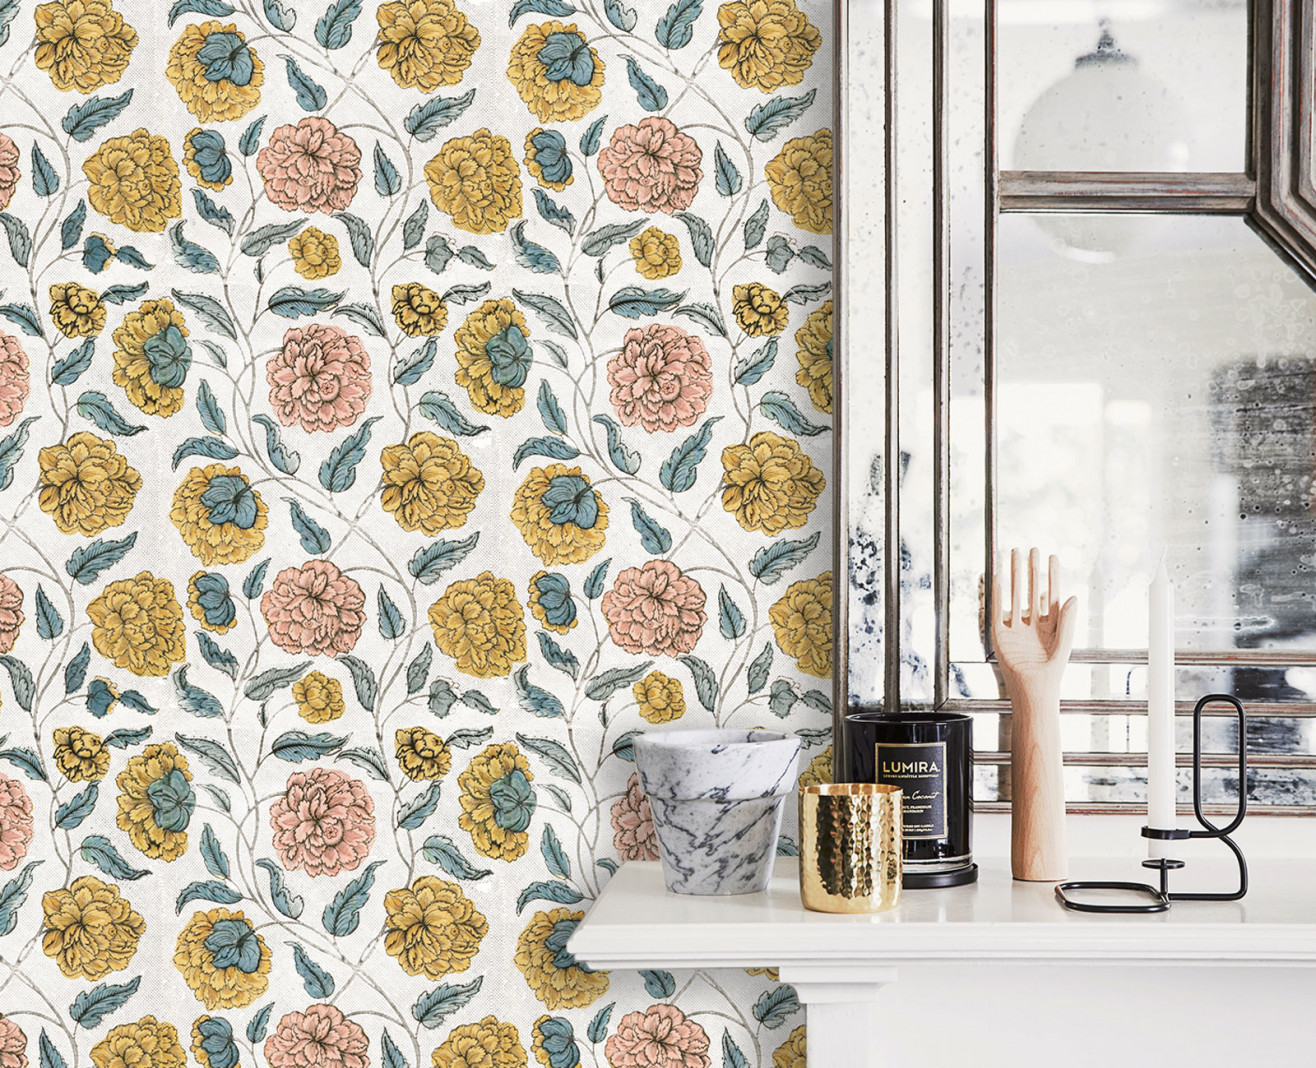 Domino wallpaper poppy . 1750